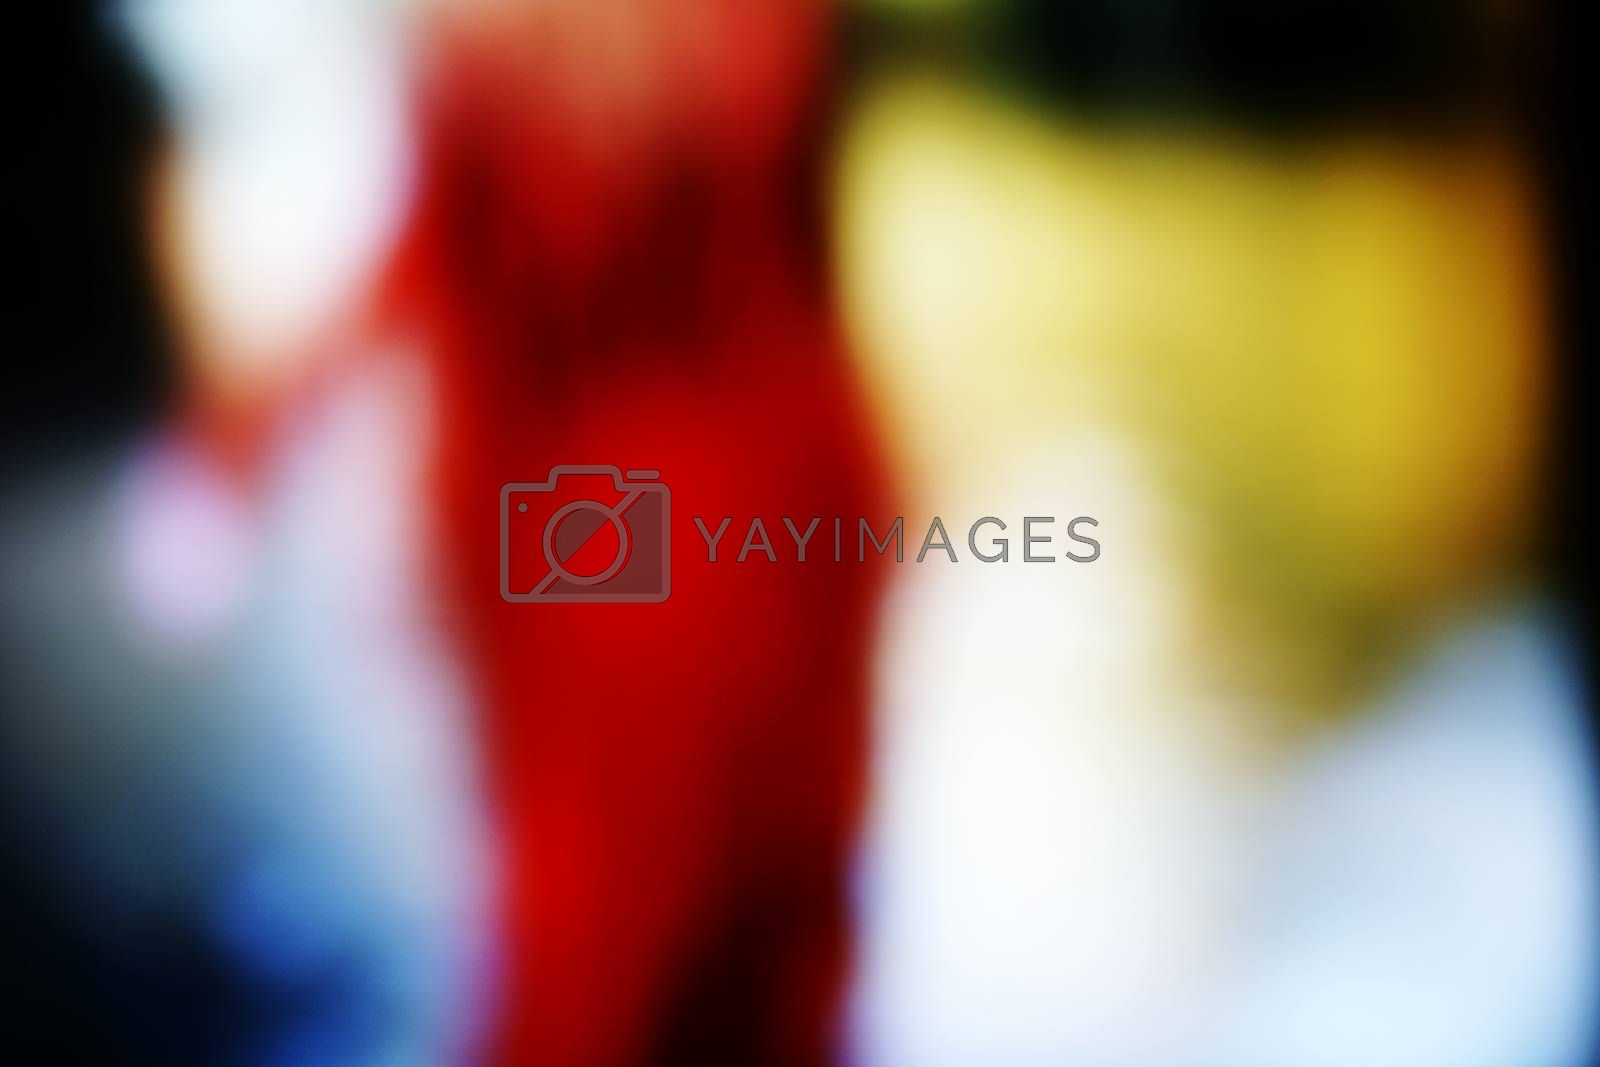 The blurred photograph of a woman in red dress, which moves away.